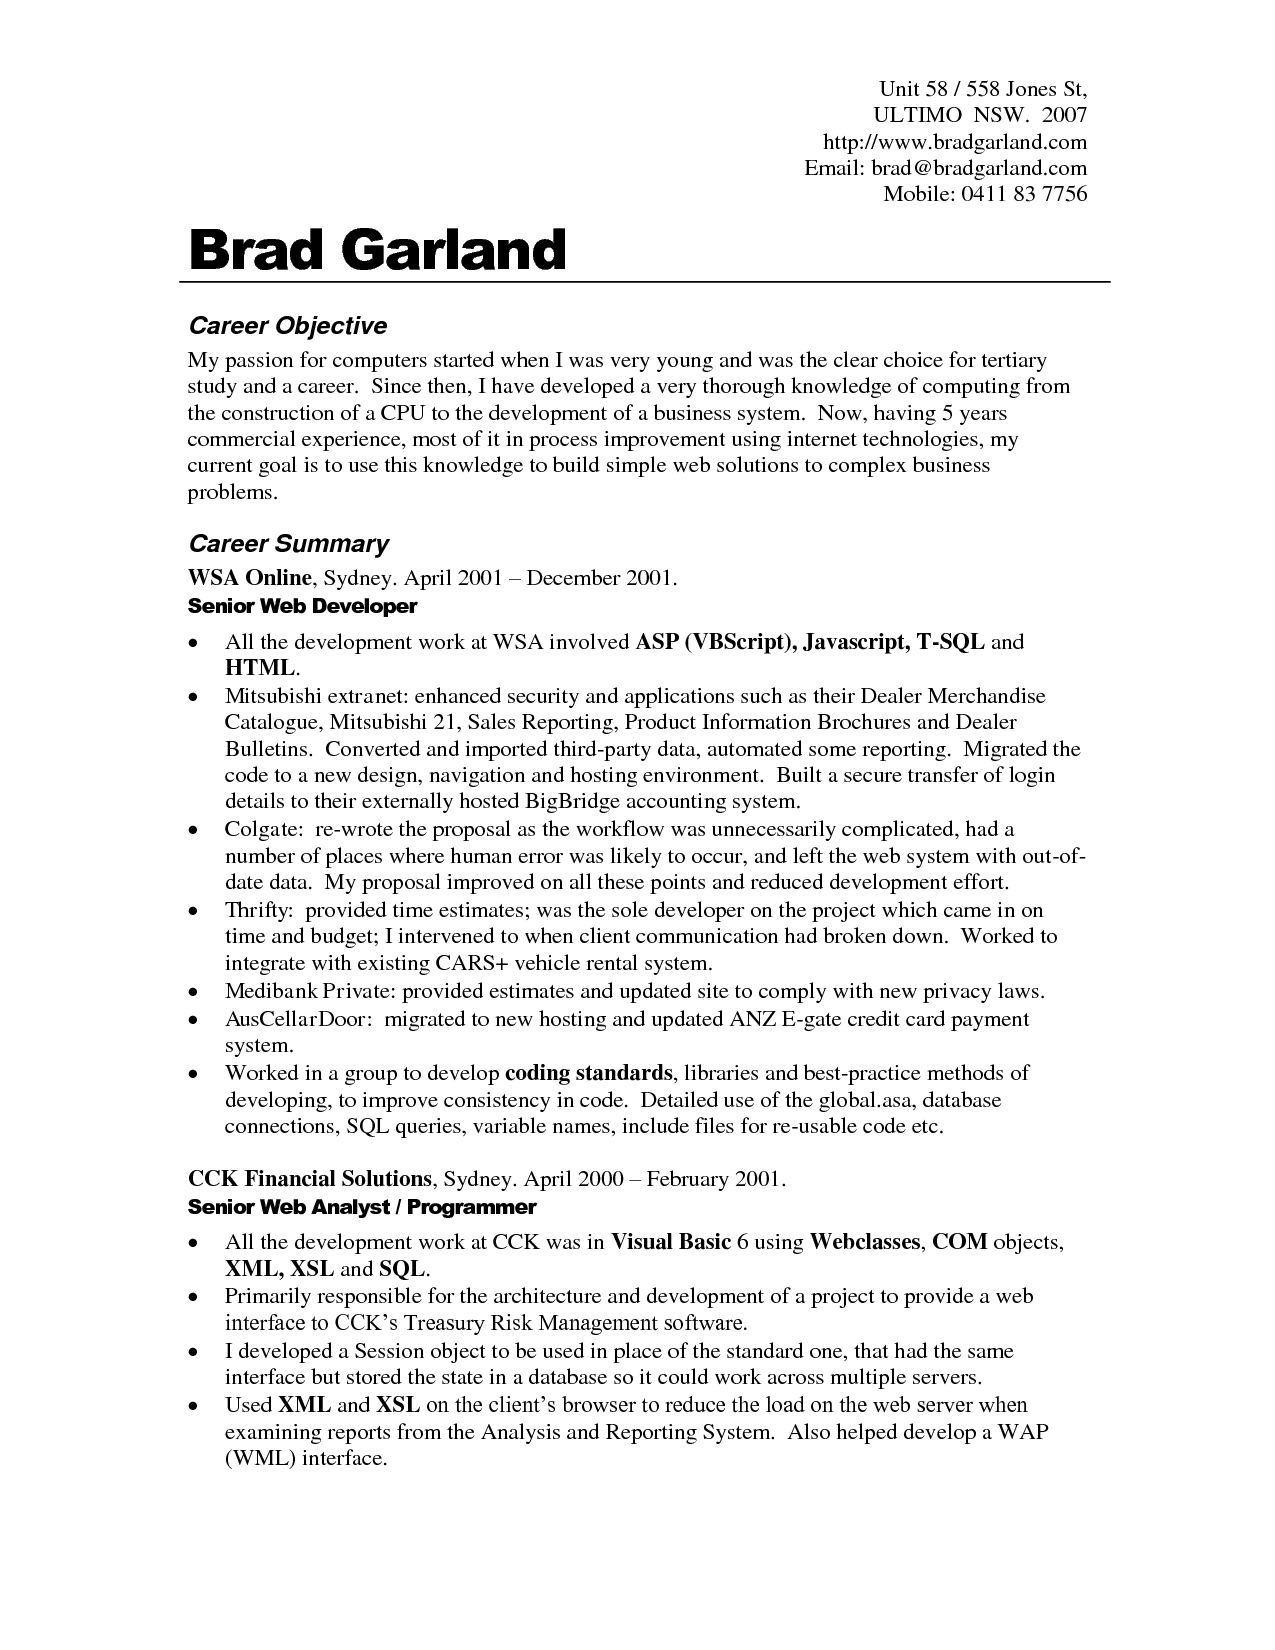 Samples Of Resume Objectives Sample Resume Action Verbs For Lawyers Formatting Back Post